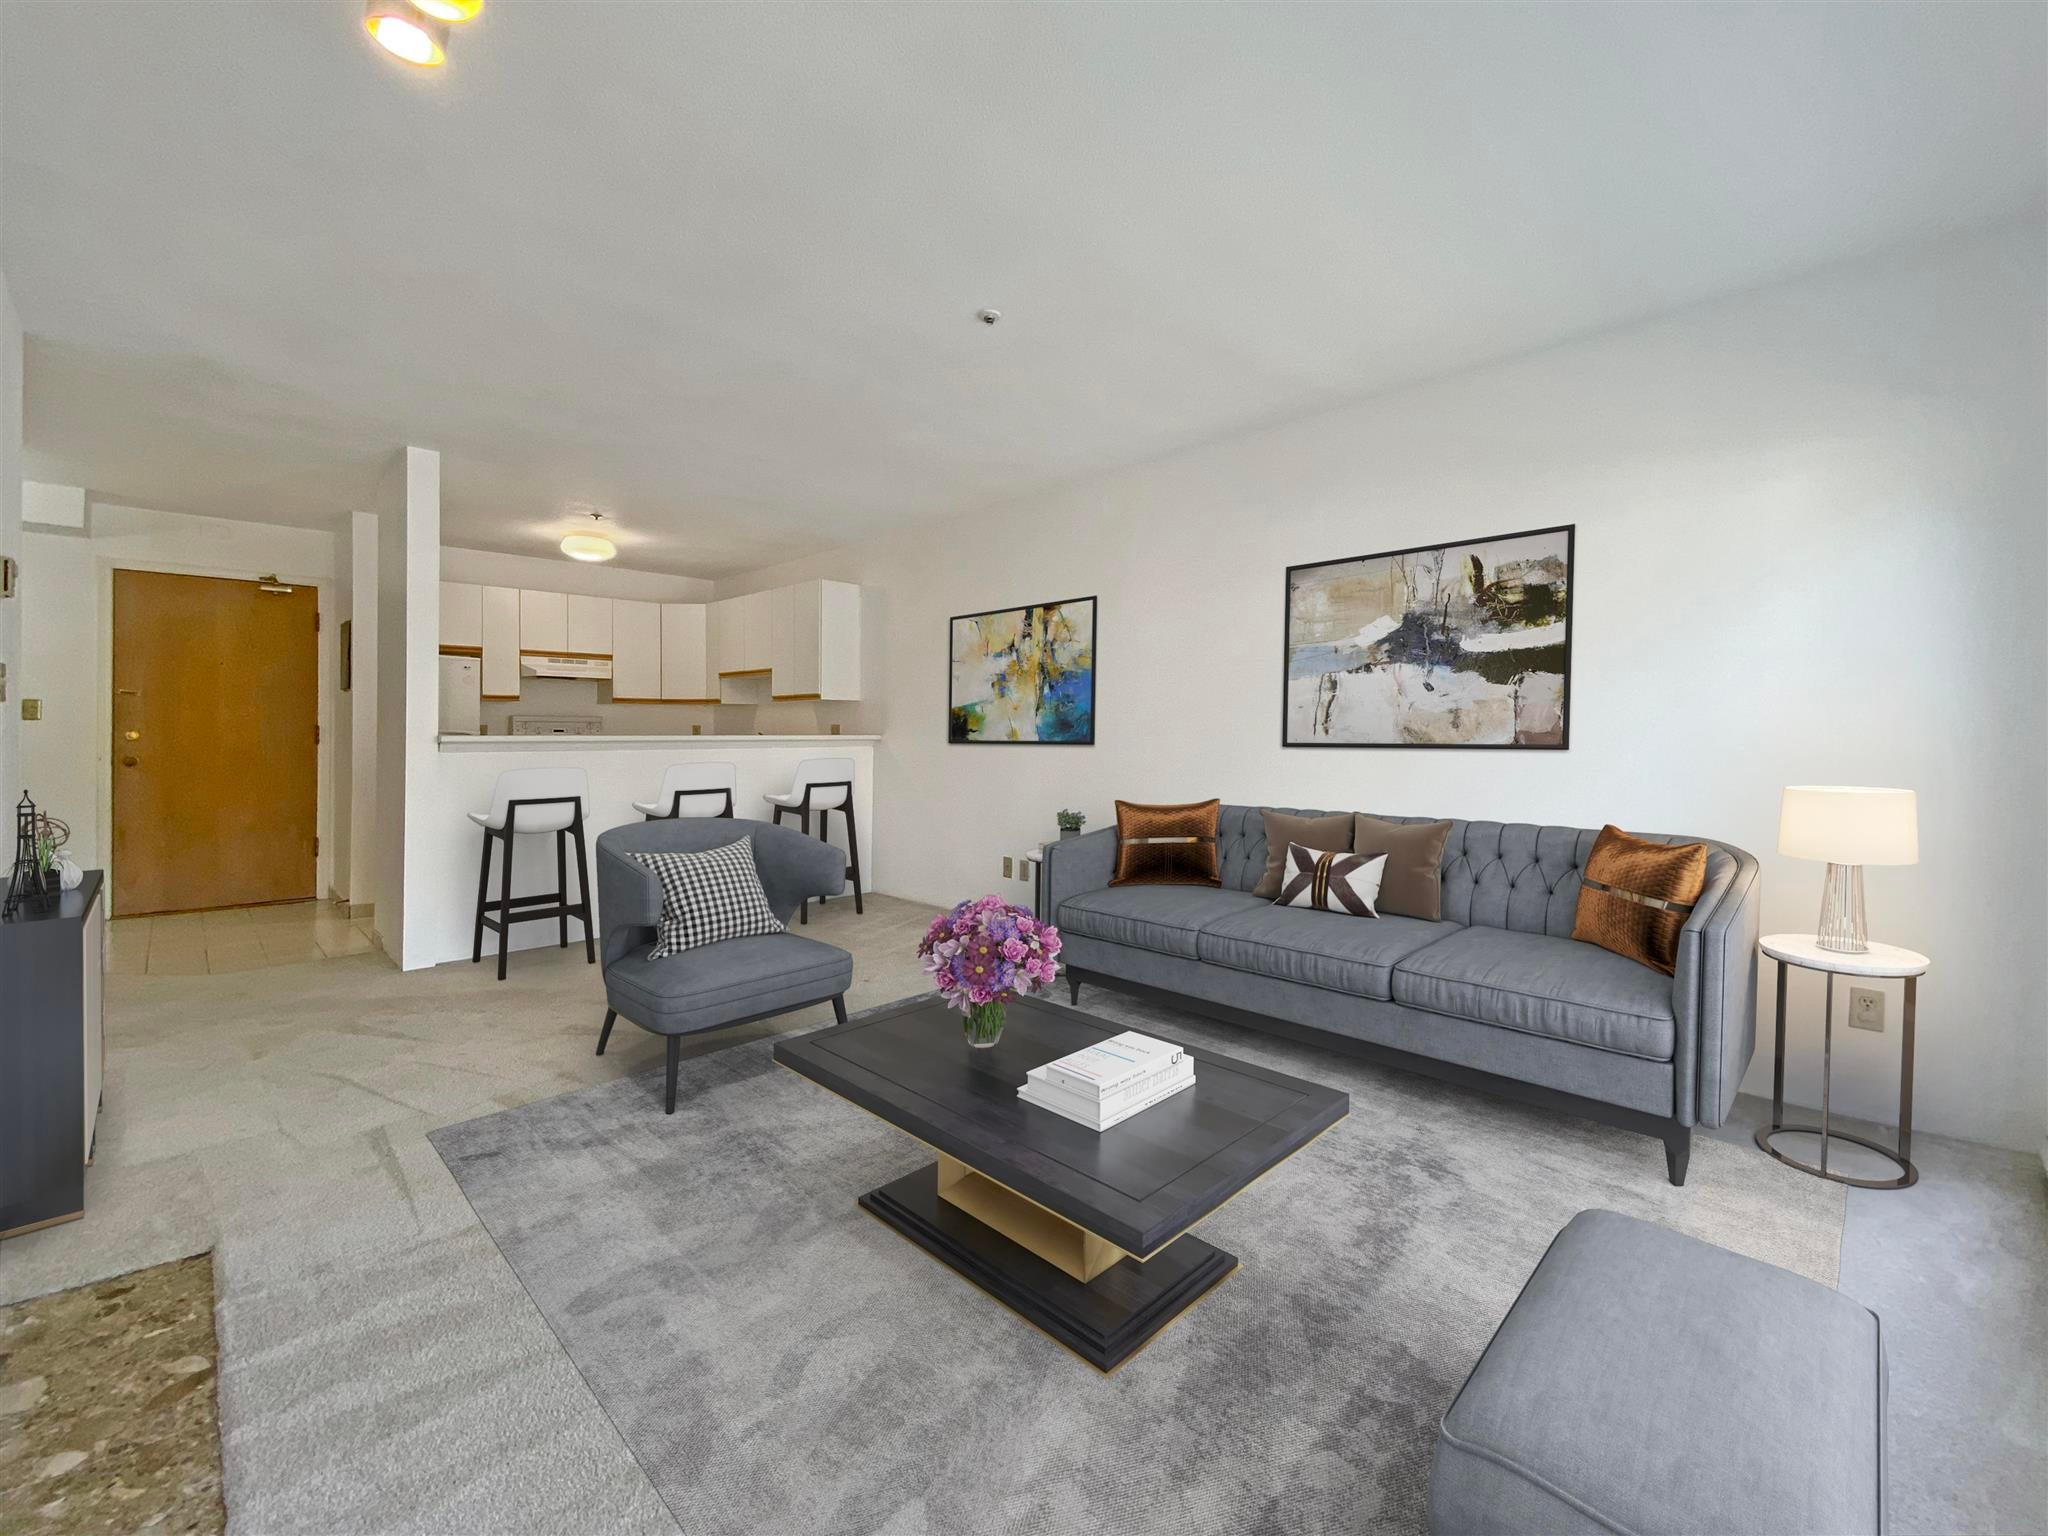 201 833 W 16TH AVENUE - Fairview VW Apartment/Condo for sale, 2 Bedrooms (R2604789)